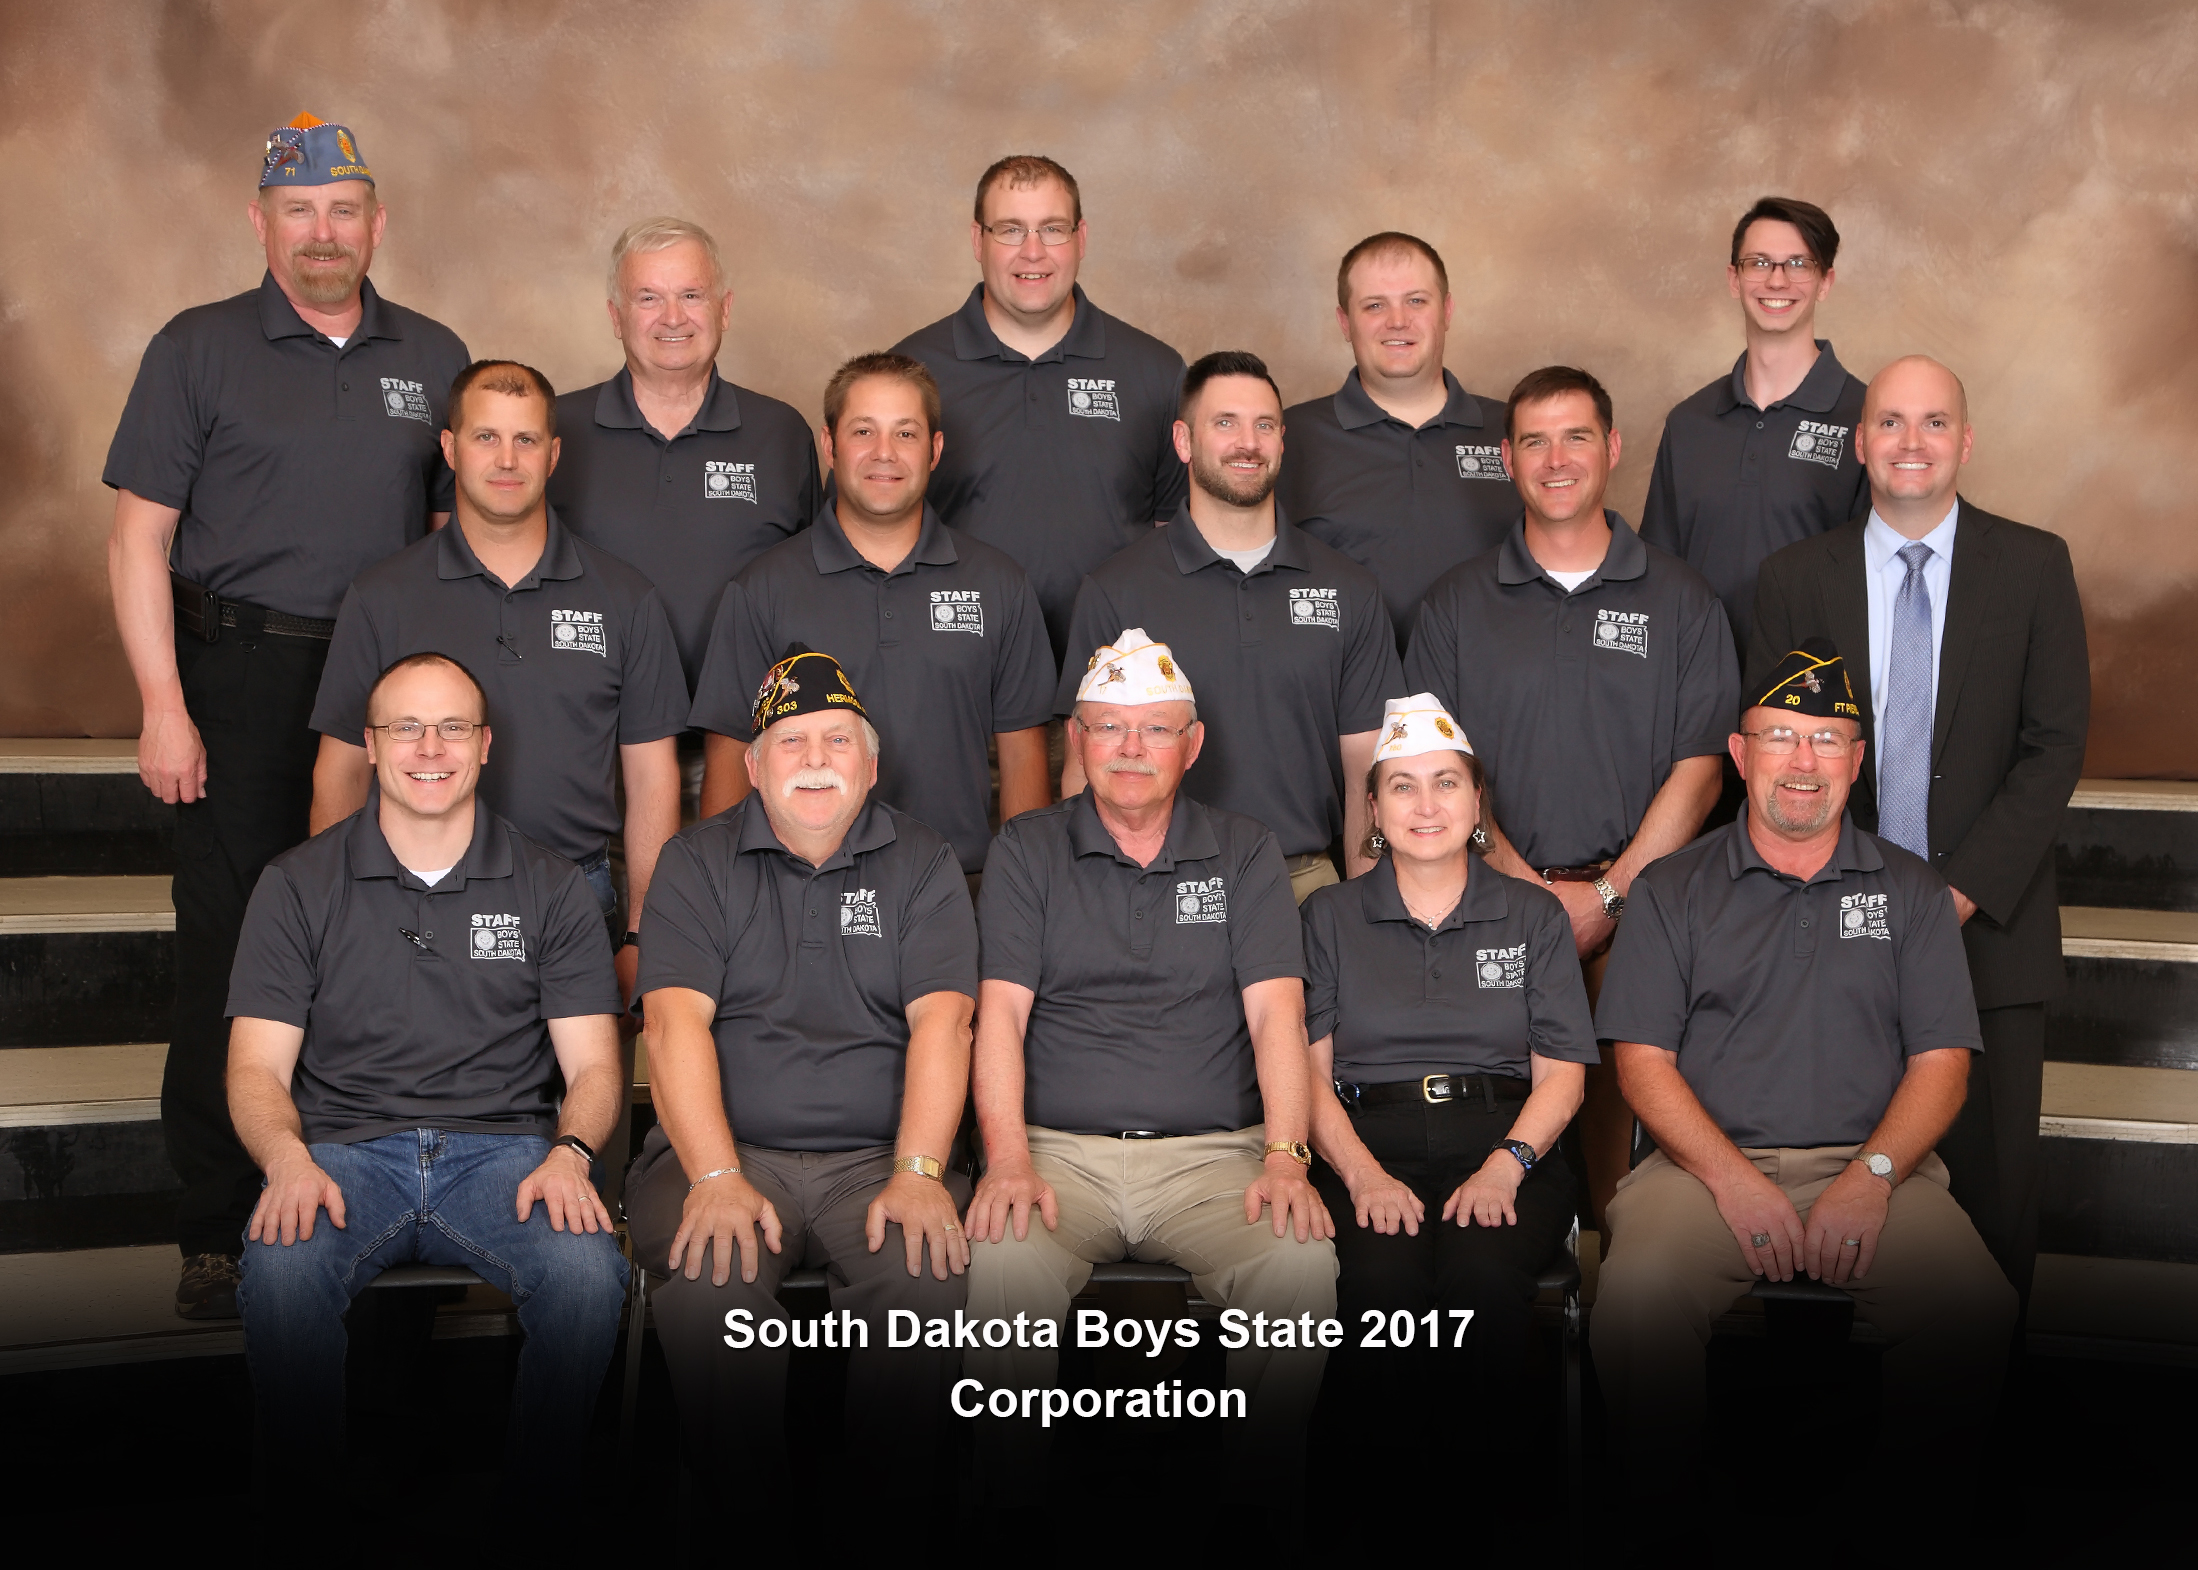 South Dakota Boys State Corporation 2017